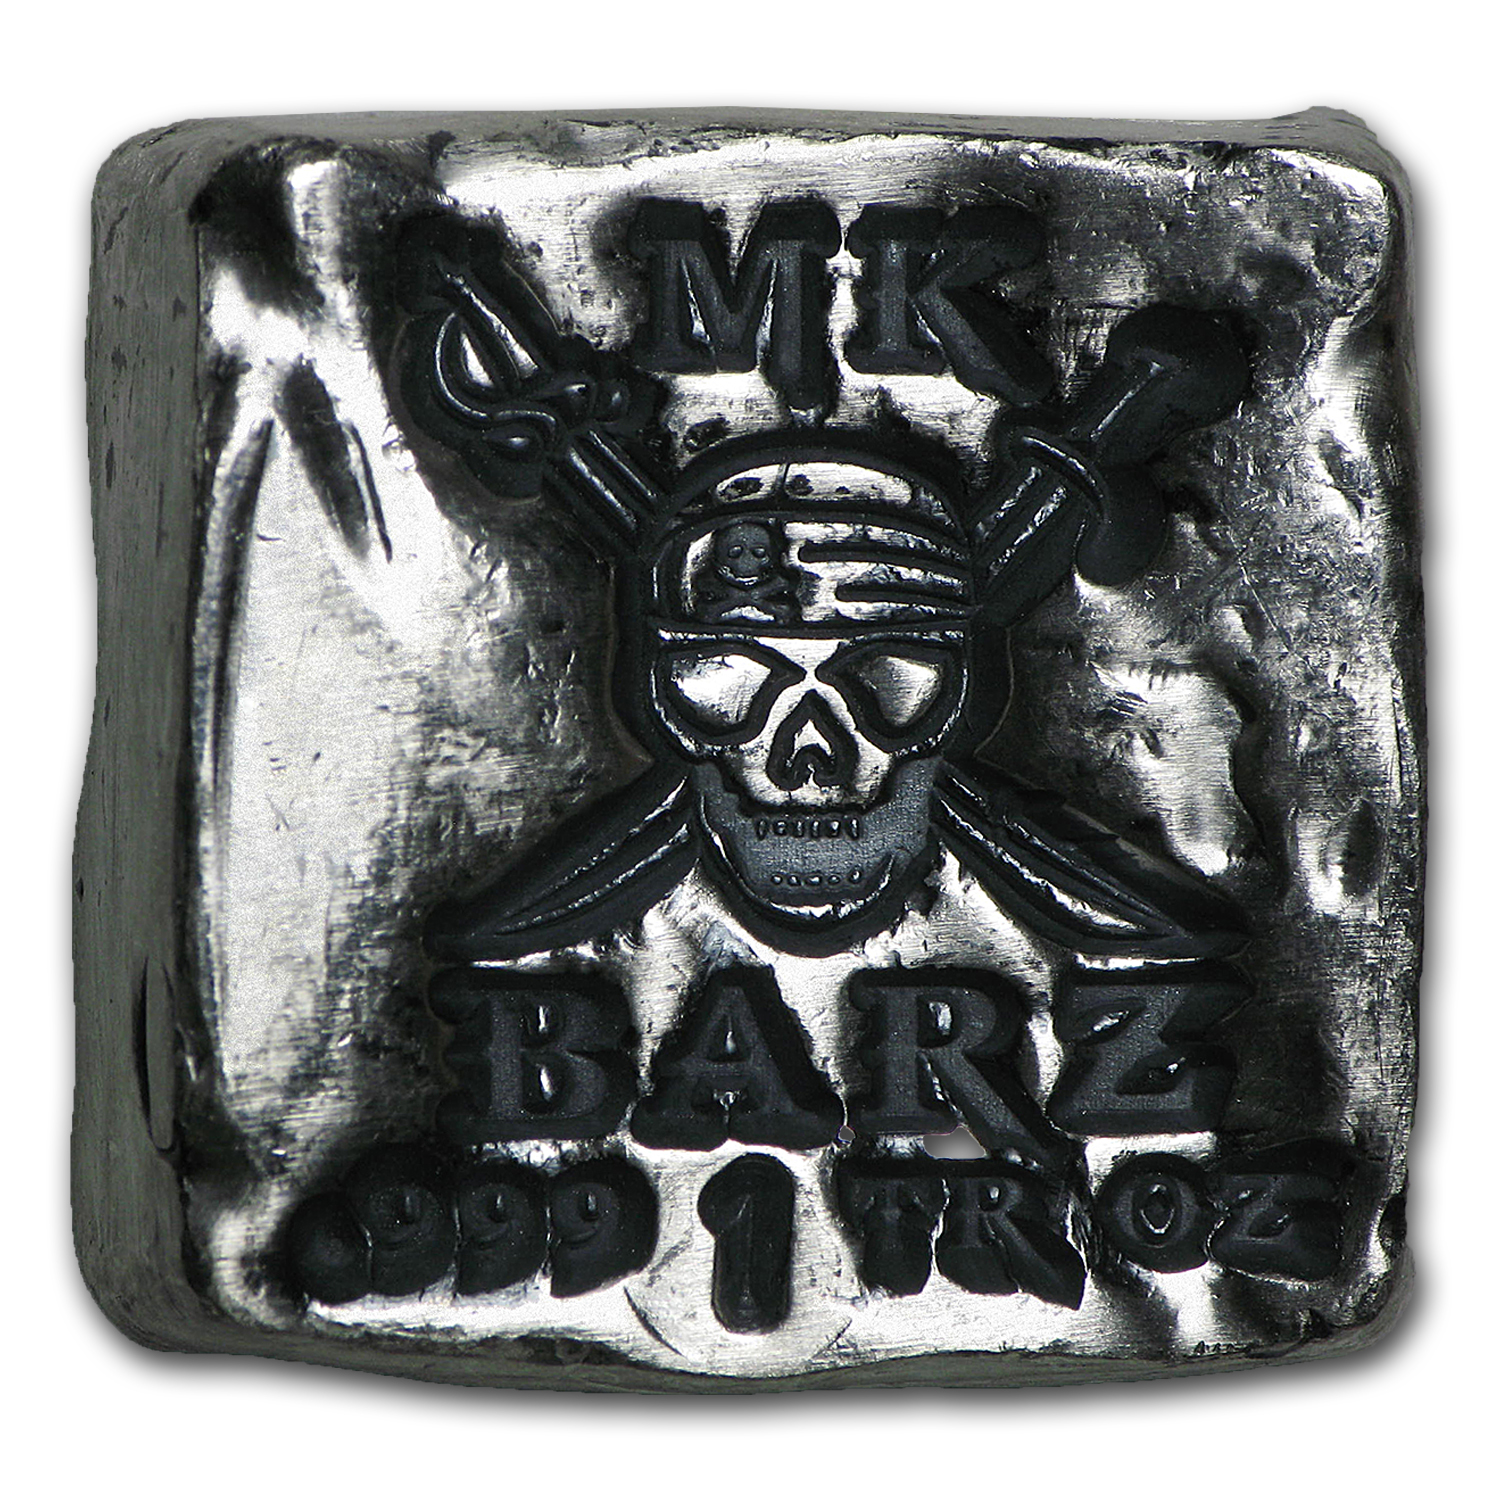 1 oz Silver Square - MK Barz & Bullion (Pirate Skull & Swords)